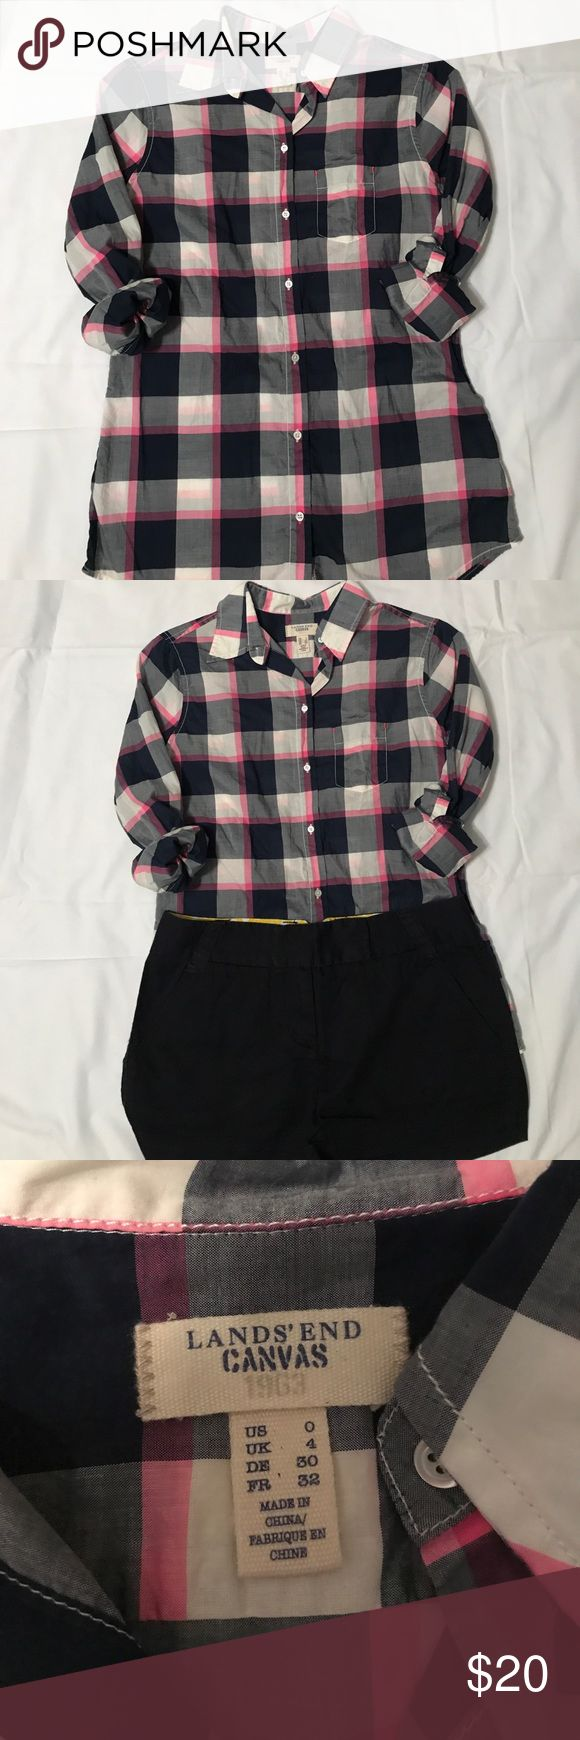 Lands End Canvas button up This pink, blue and white buffalo checked button up is super soft! It is light weight which makes it perfect for spring or summer. Pair it with navy, denim or white jeans or pants. This has barely been worn. In perfect condition. Lands' End Tops Button Down Shirts